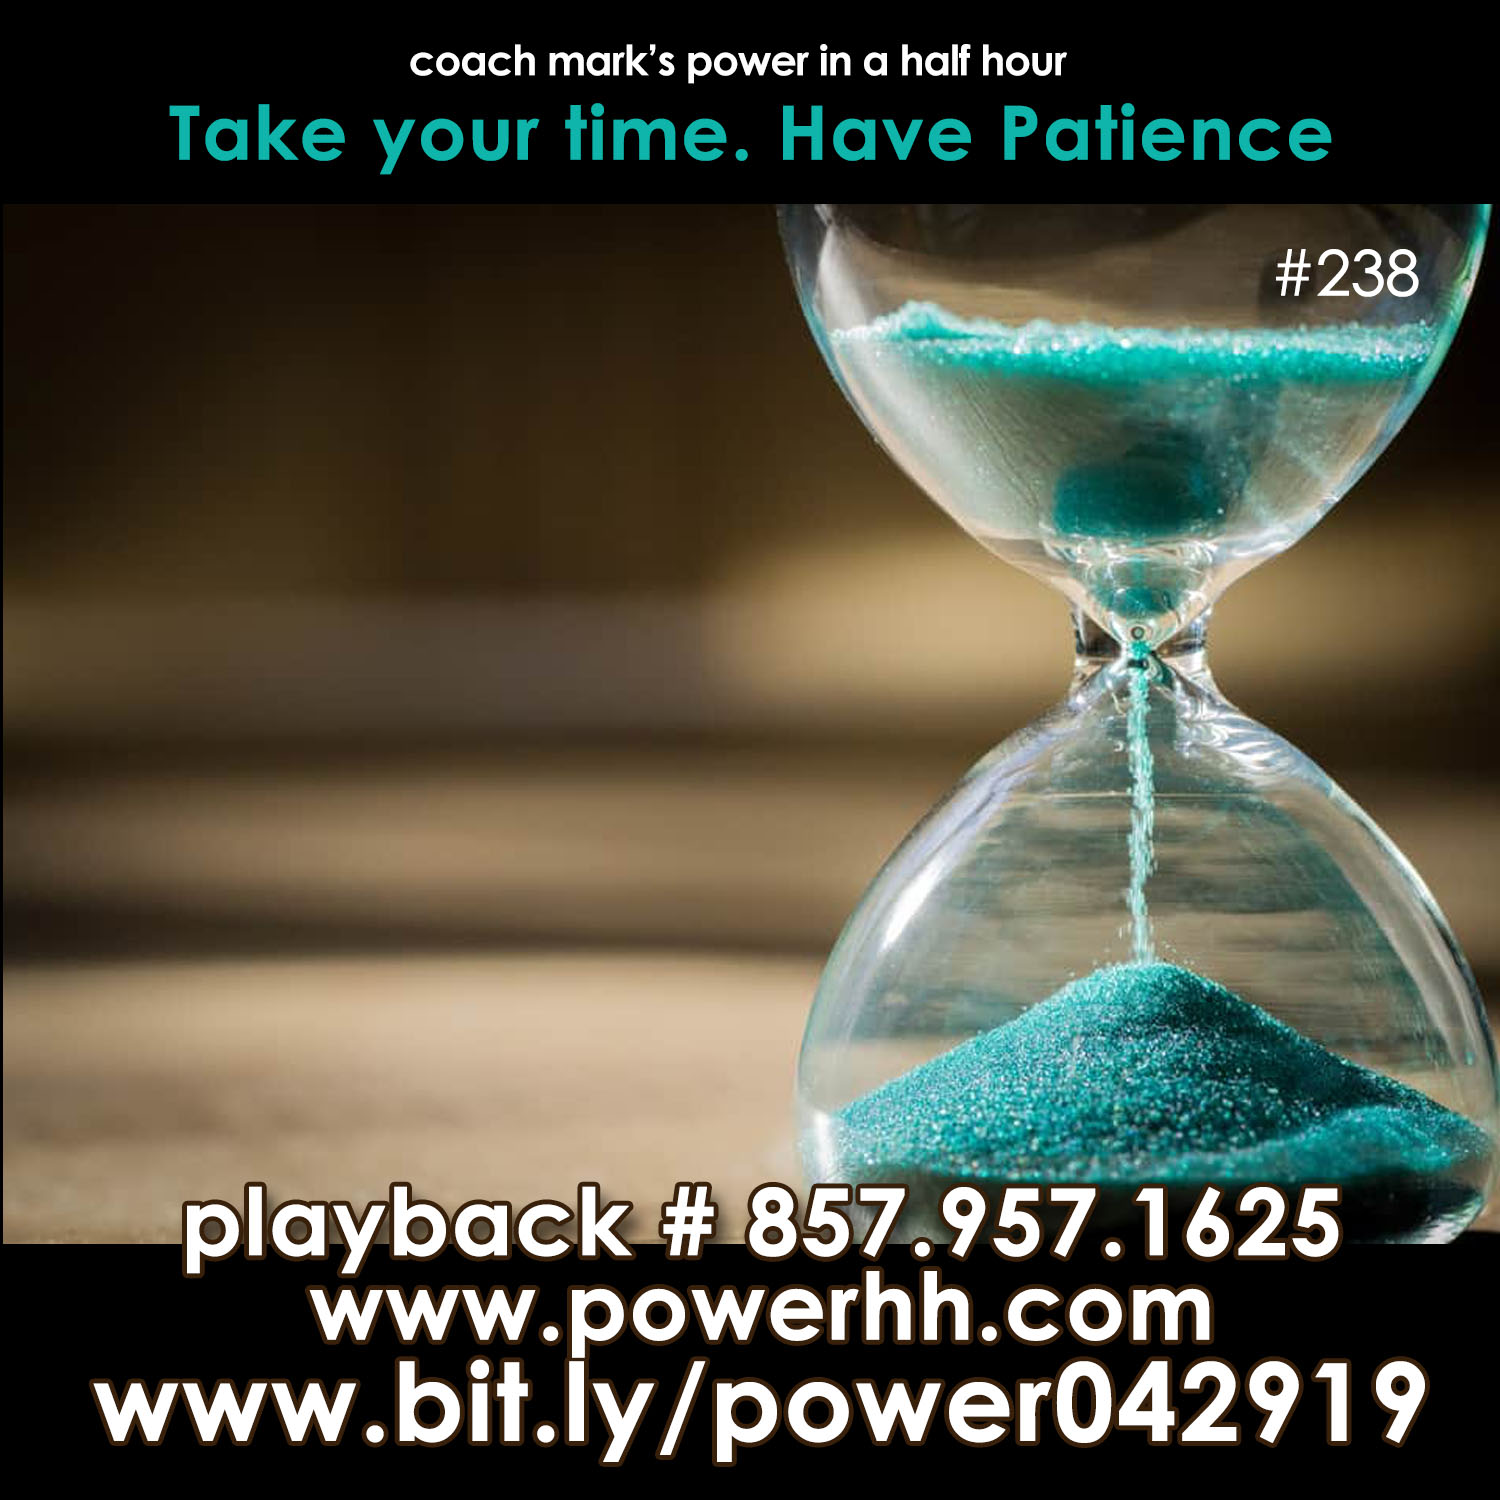 power replay 042919